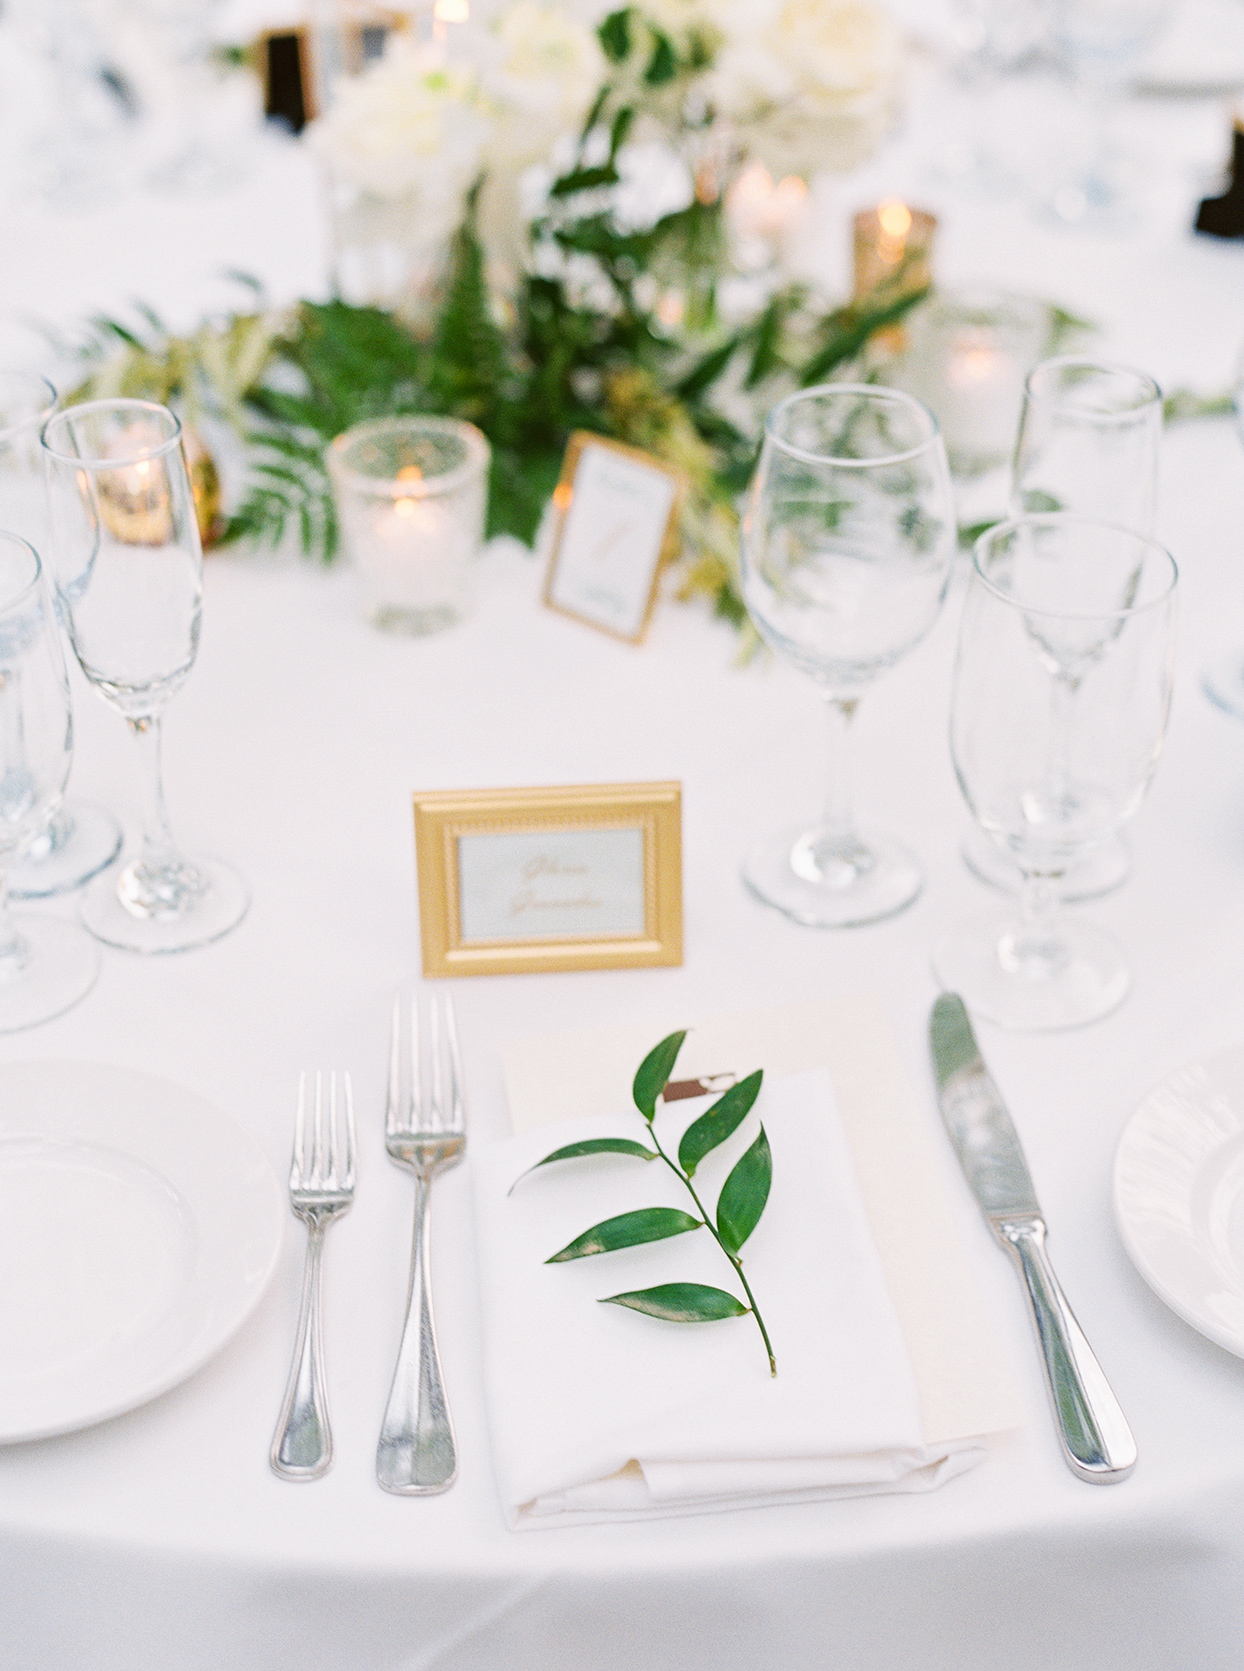 simple elegant white place setting with greenery